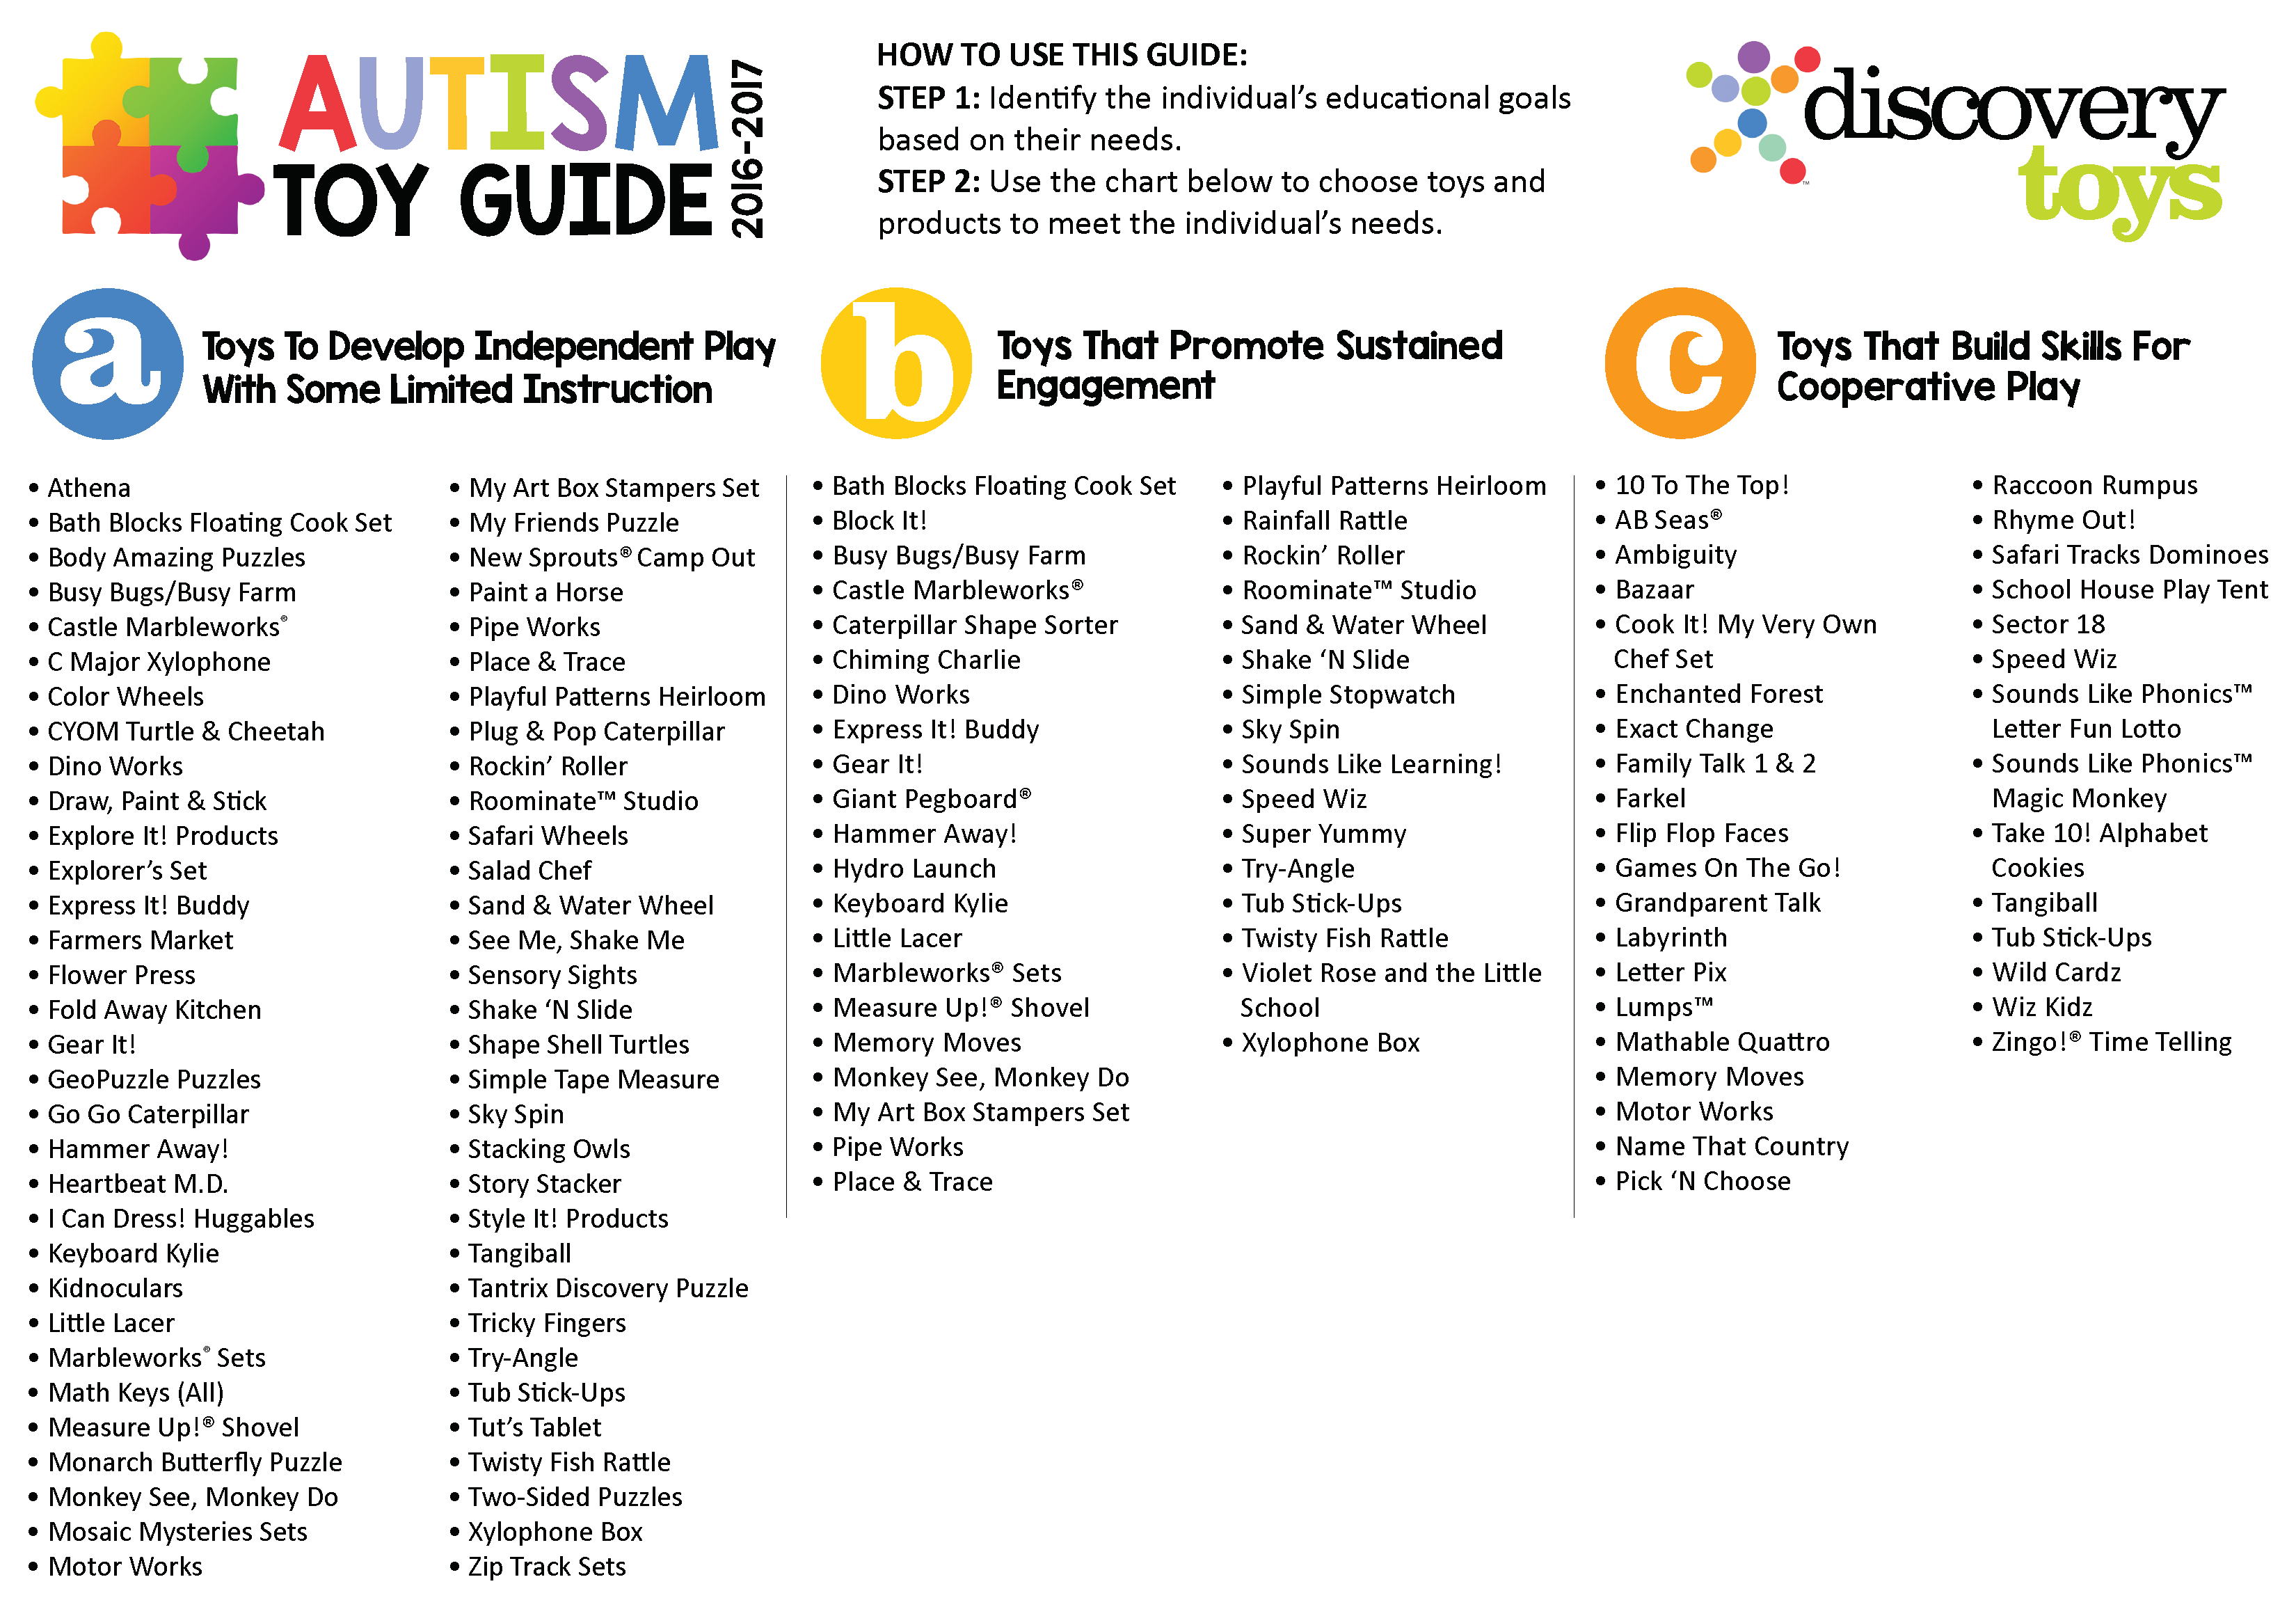 Discovery-Toys-Autism-Toy-Guide-8